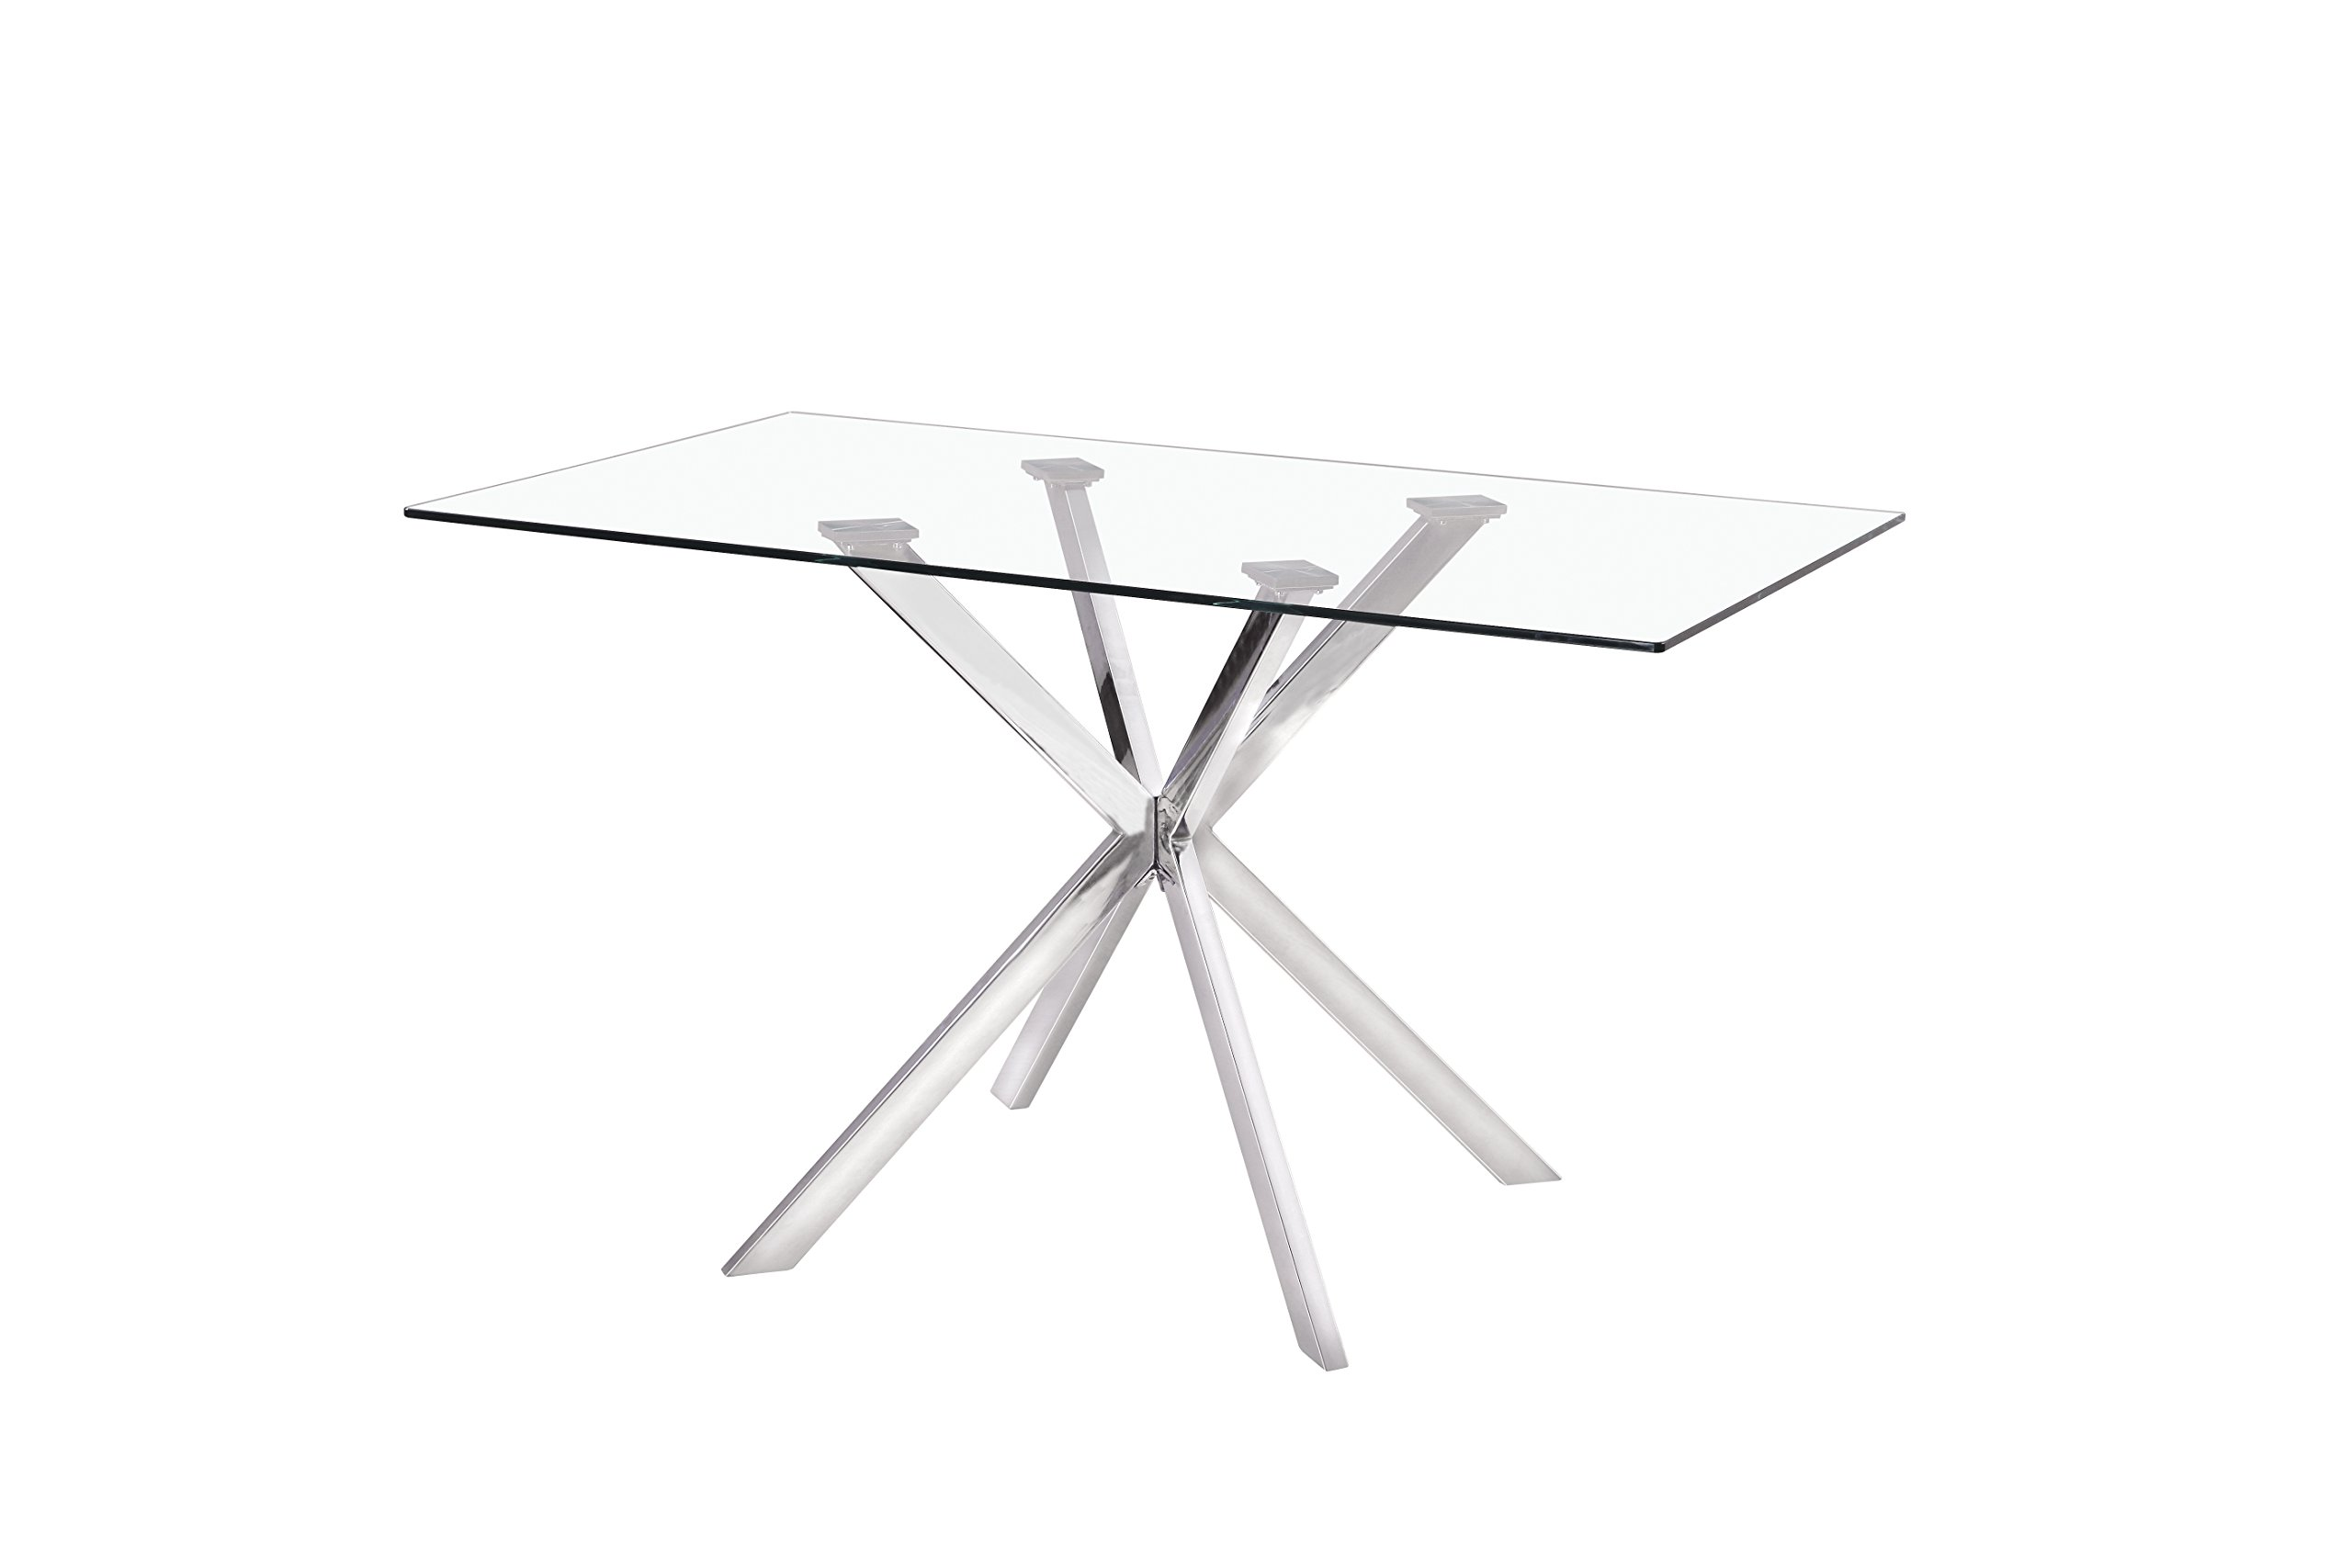 Uptown Club Linus Collection Rectangle Modern Exquisite Chrome Frame Glass Top Dining room Table, 51.2'' L x 31.5'' W x 29.5'' H